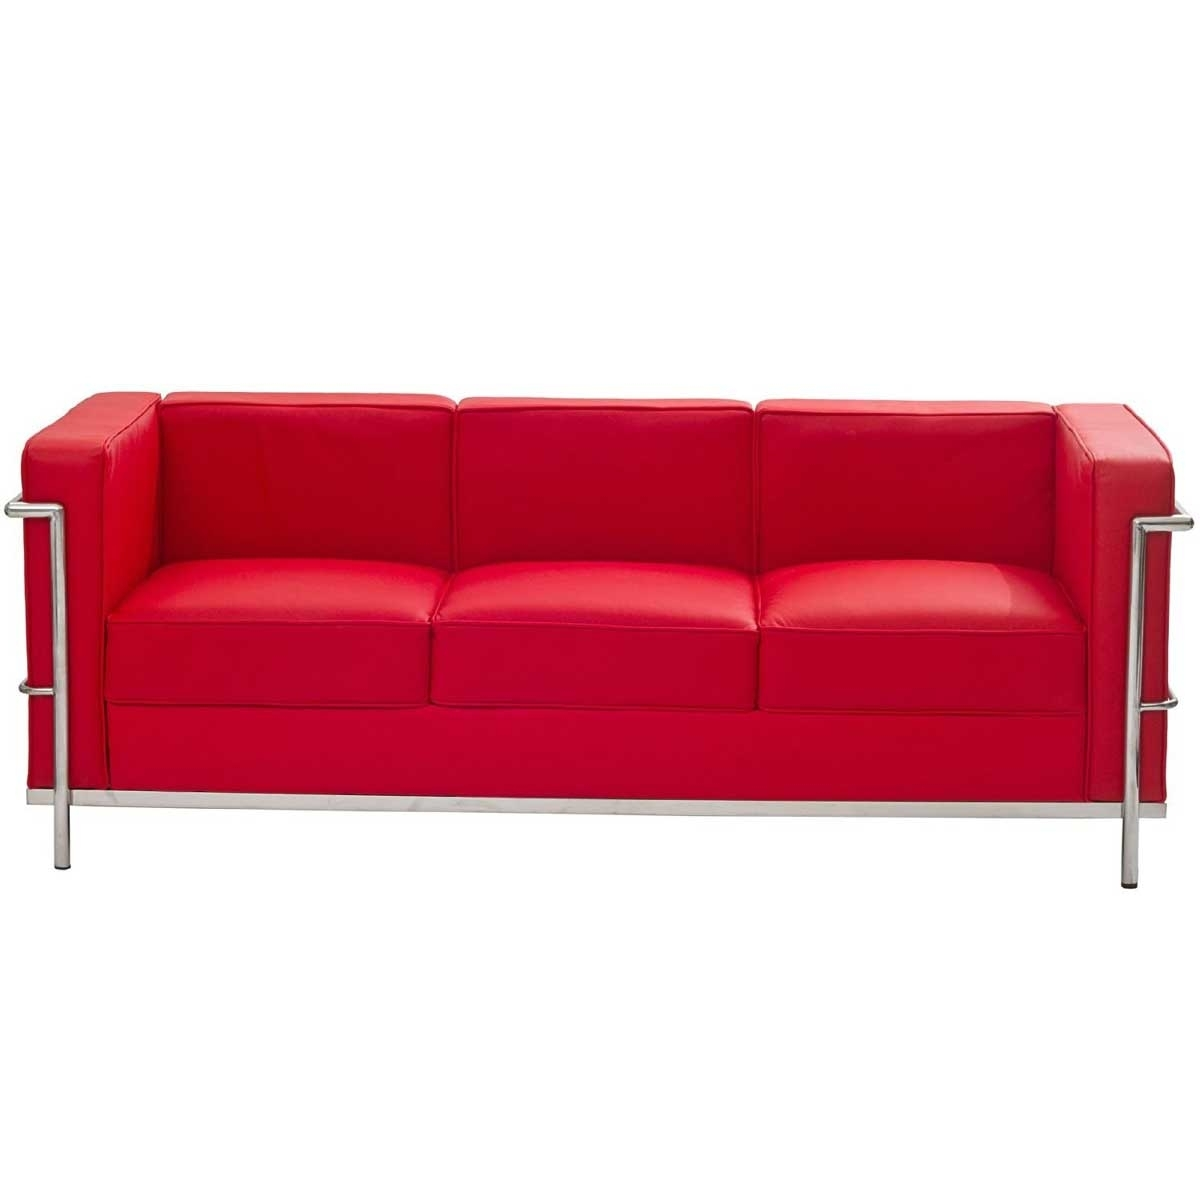 Lovely Modern Red Leather Sofa 21 For Your Sofas And Couches Ideas pertaining to Red Leather Couches (Image 7 of 15)